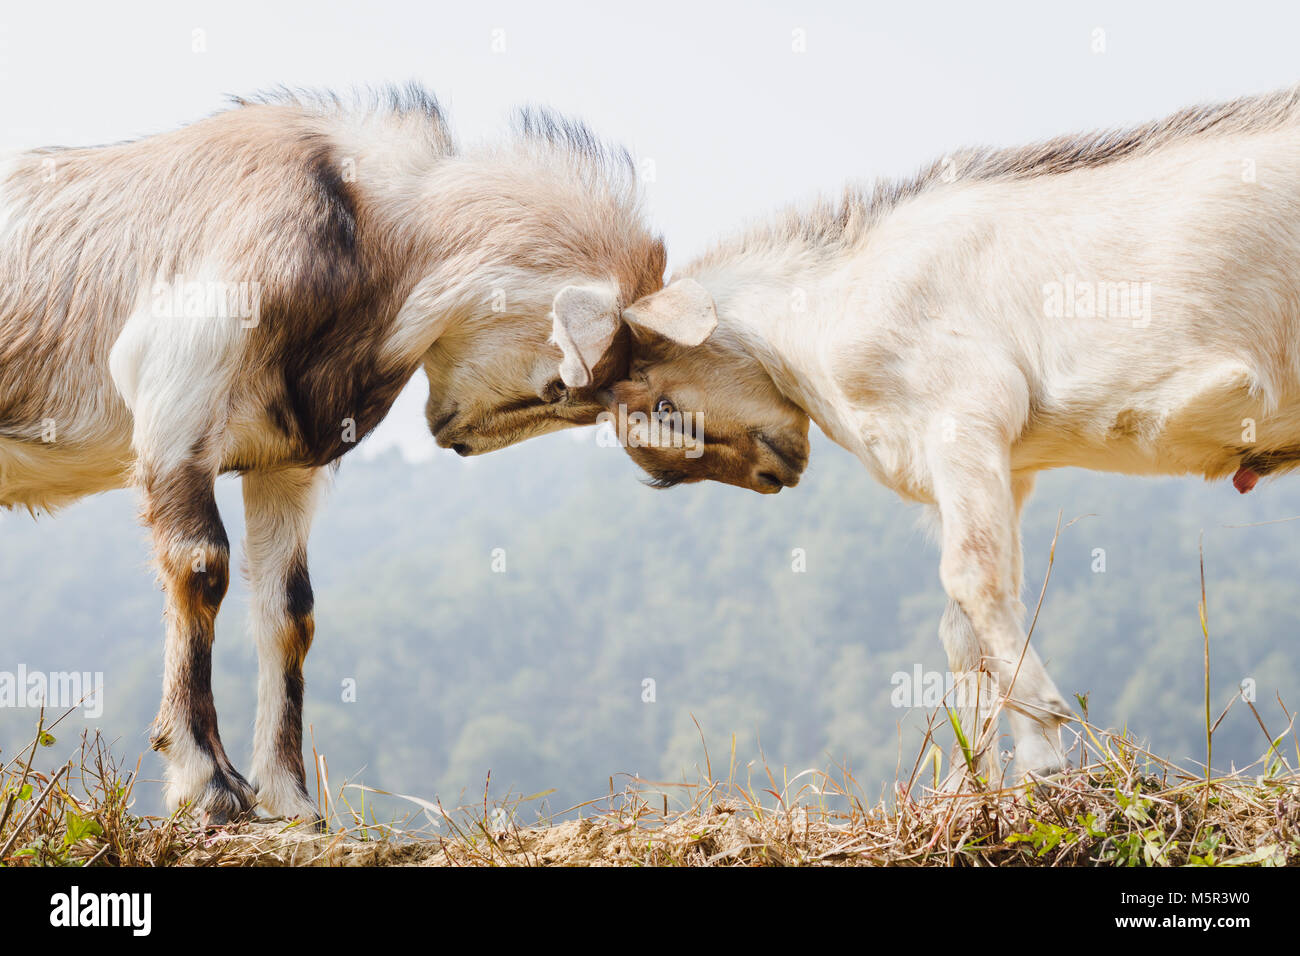 Himalayan goats fighting at the field. - Stock Image